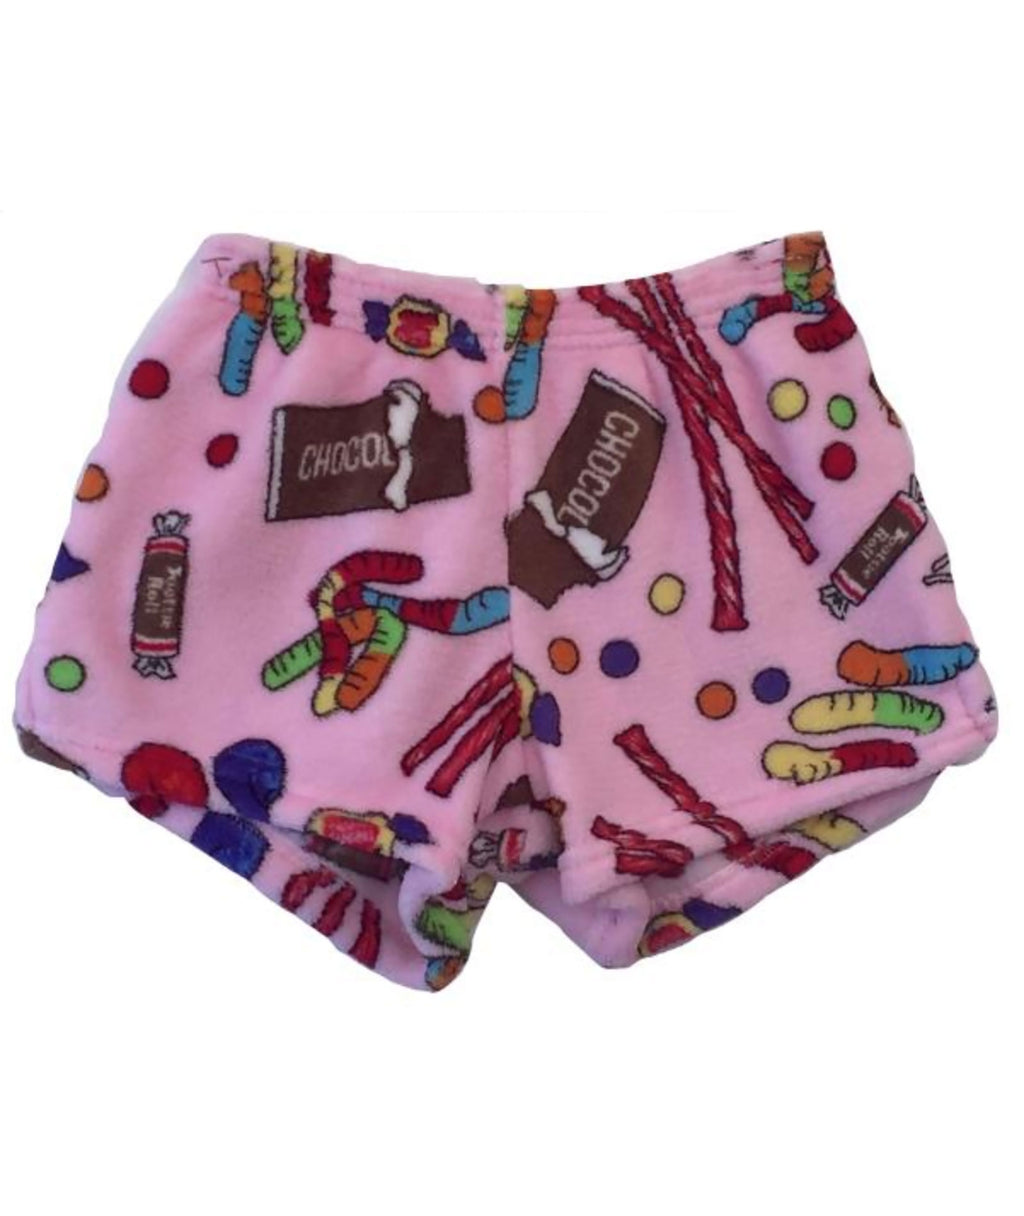 Made with Love and Kisses Girls Candy Shorts